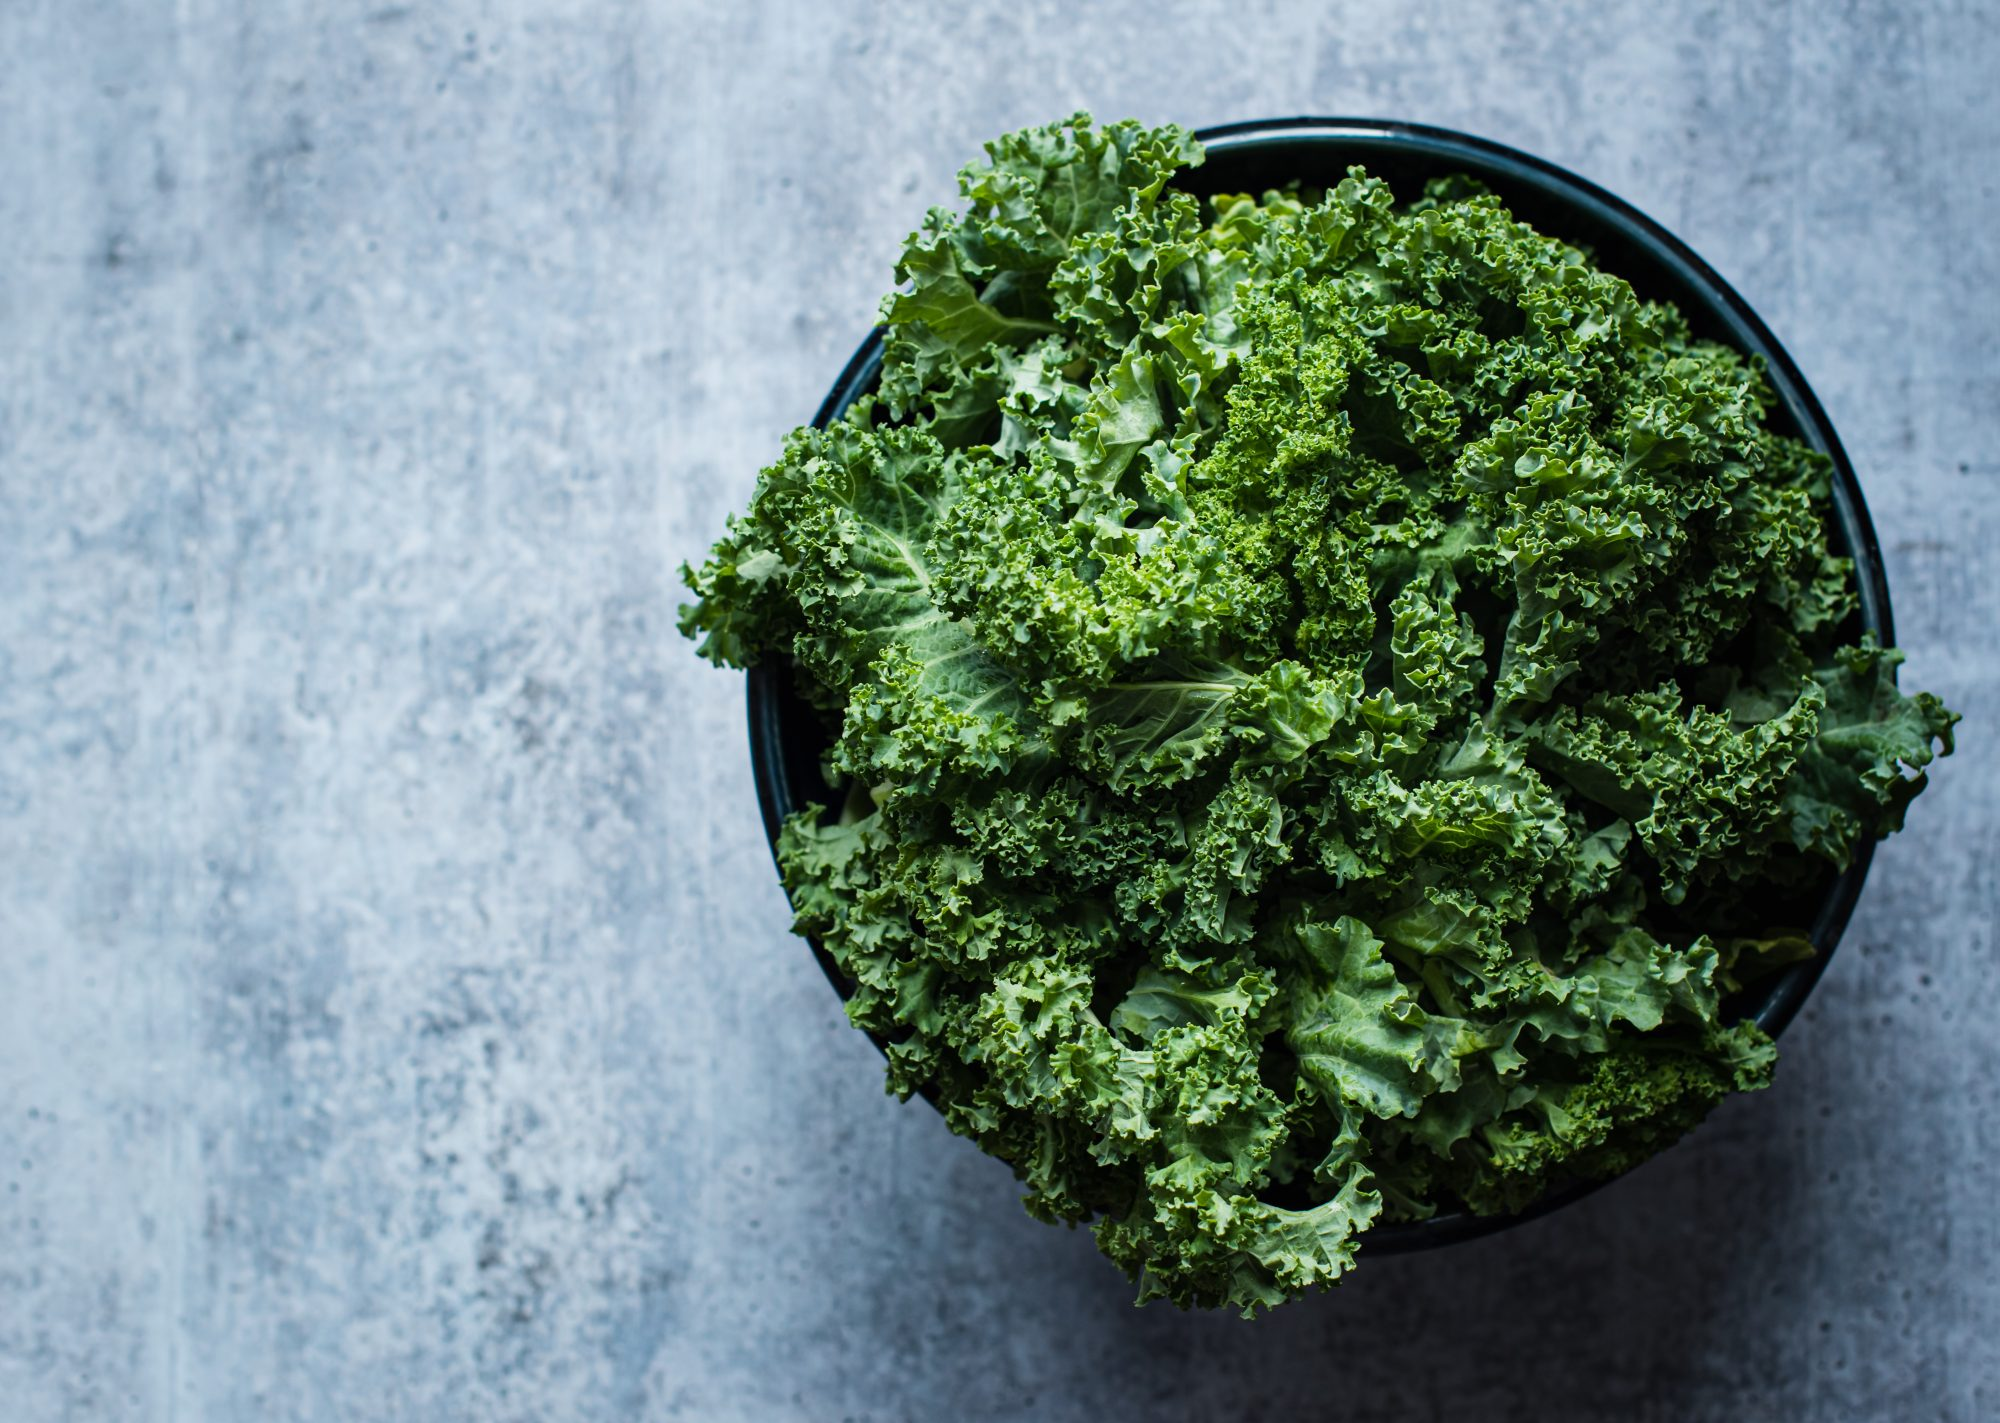 bowl of kale on counter